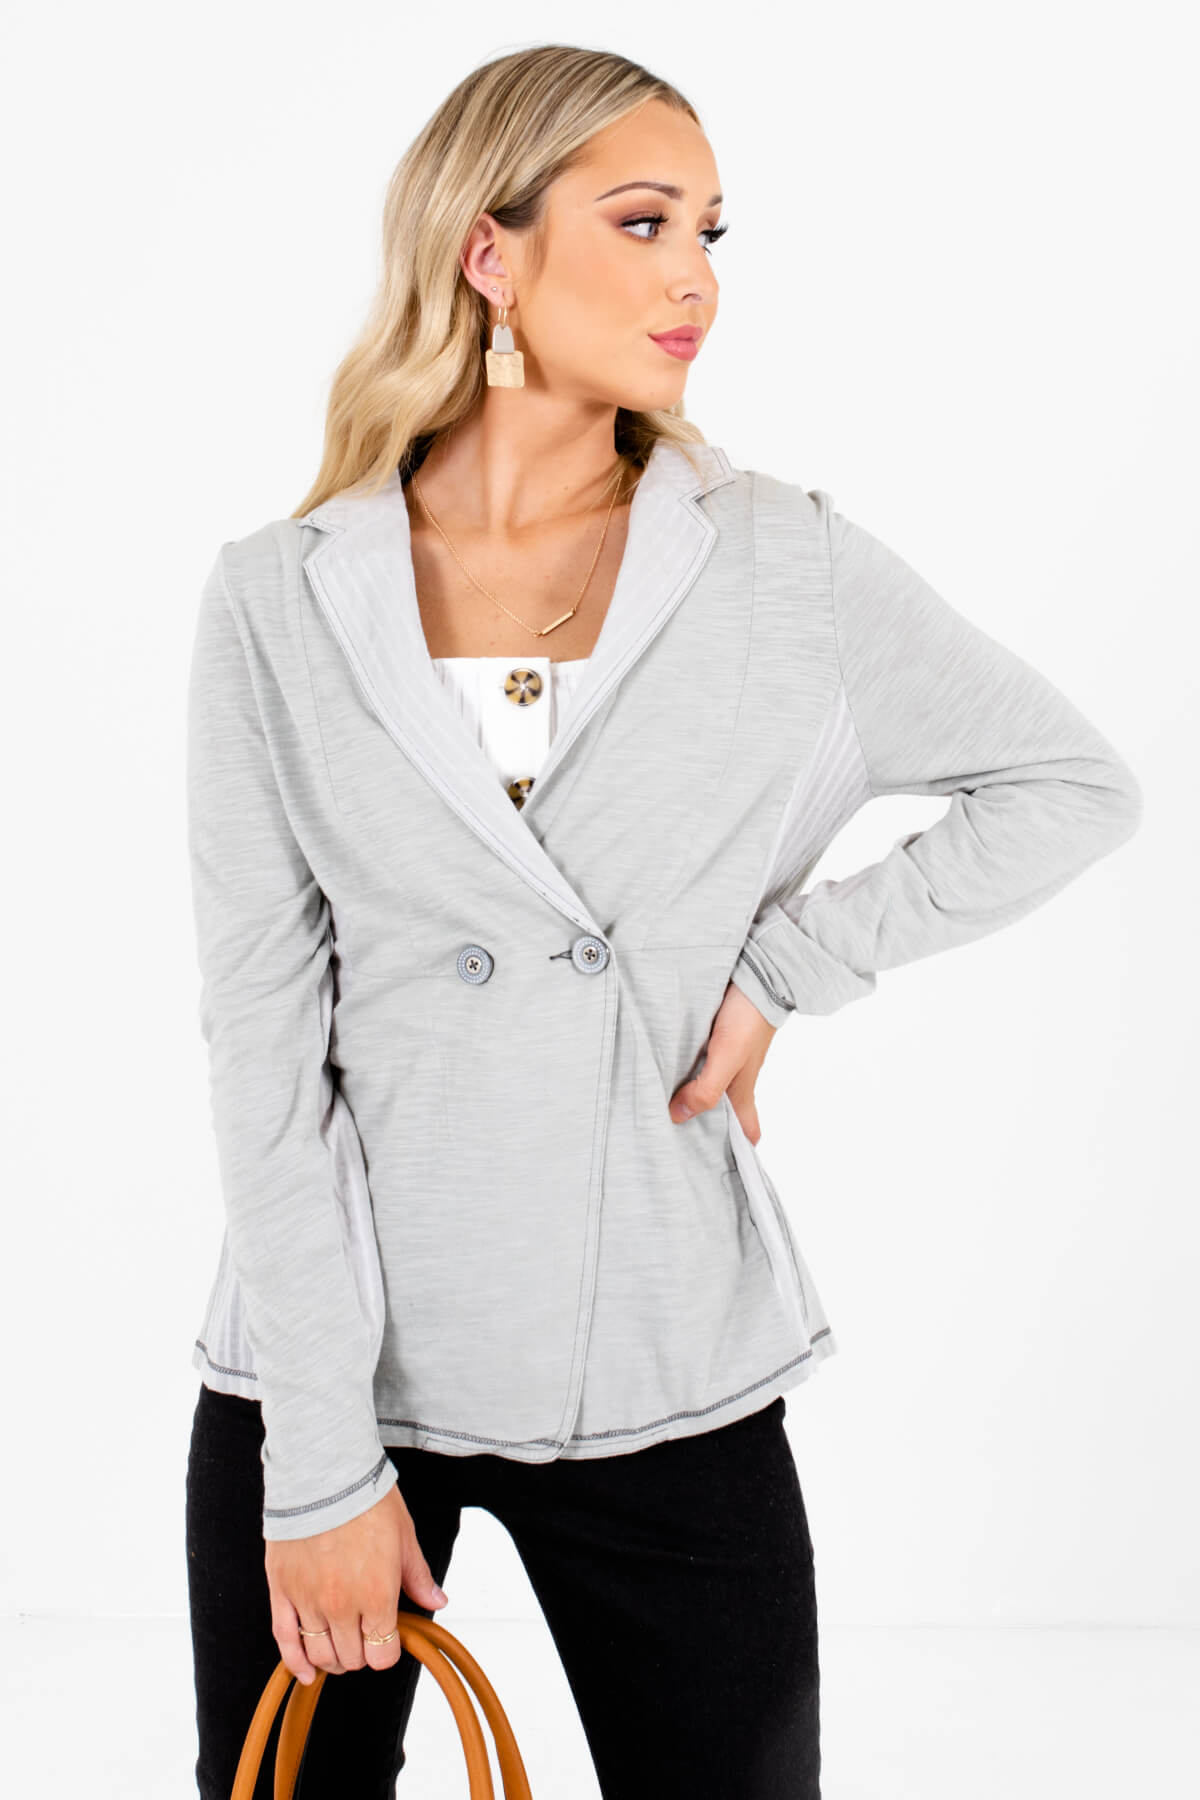 Heathered Sage Green Boutique Blazers for Women